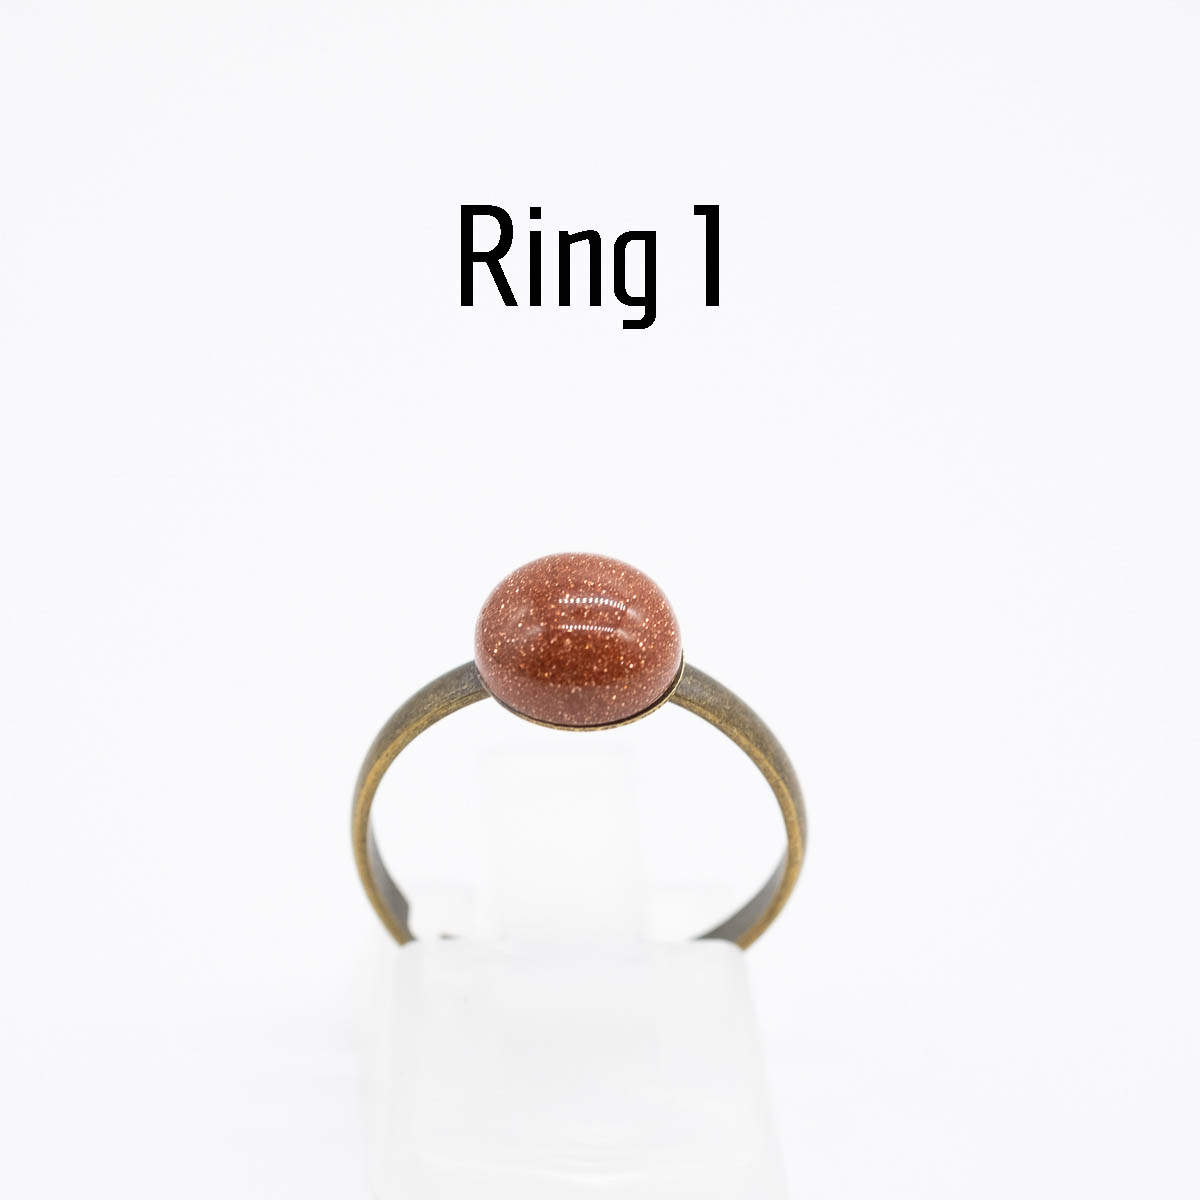 RNG-017 goudsteen ring type 1